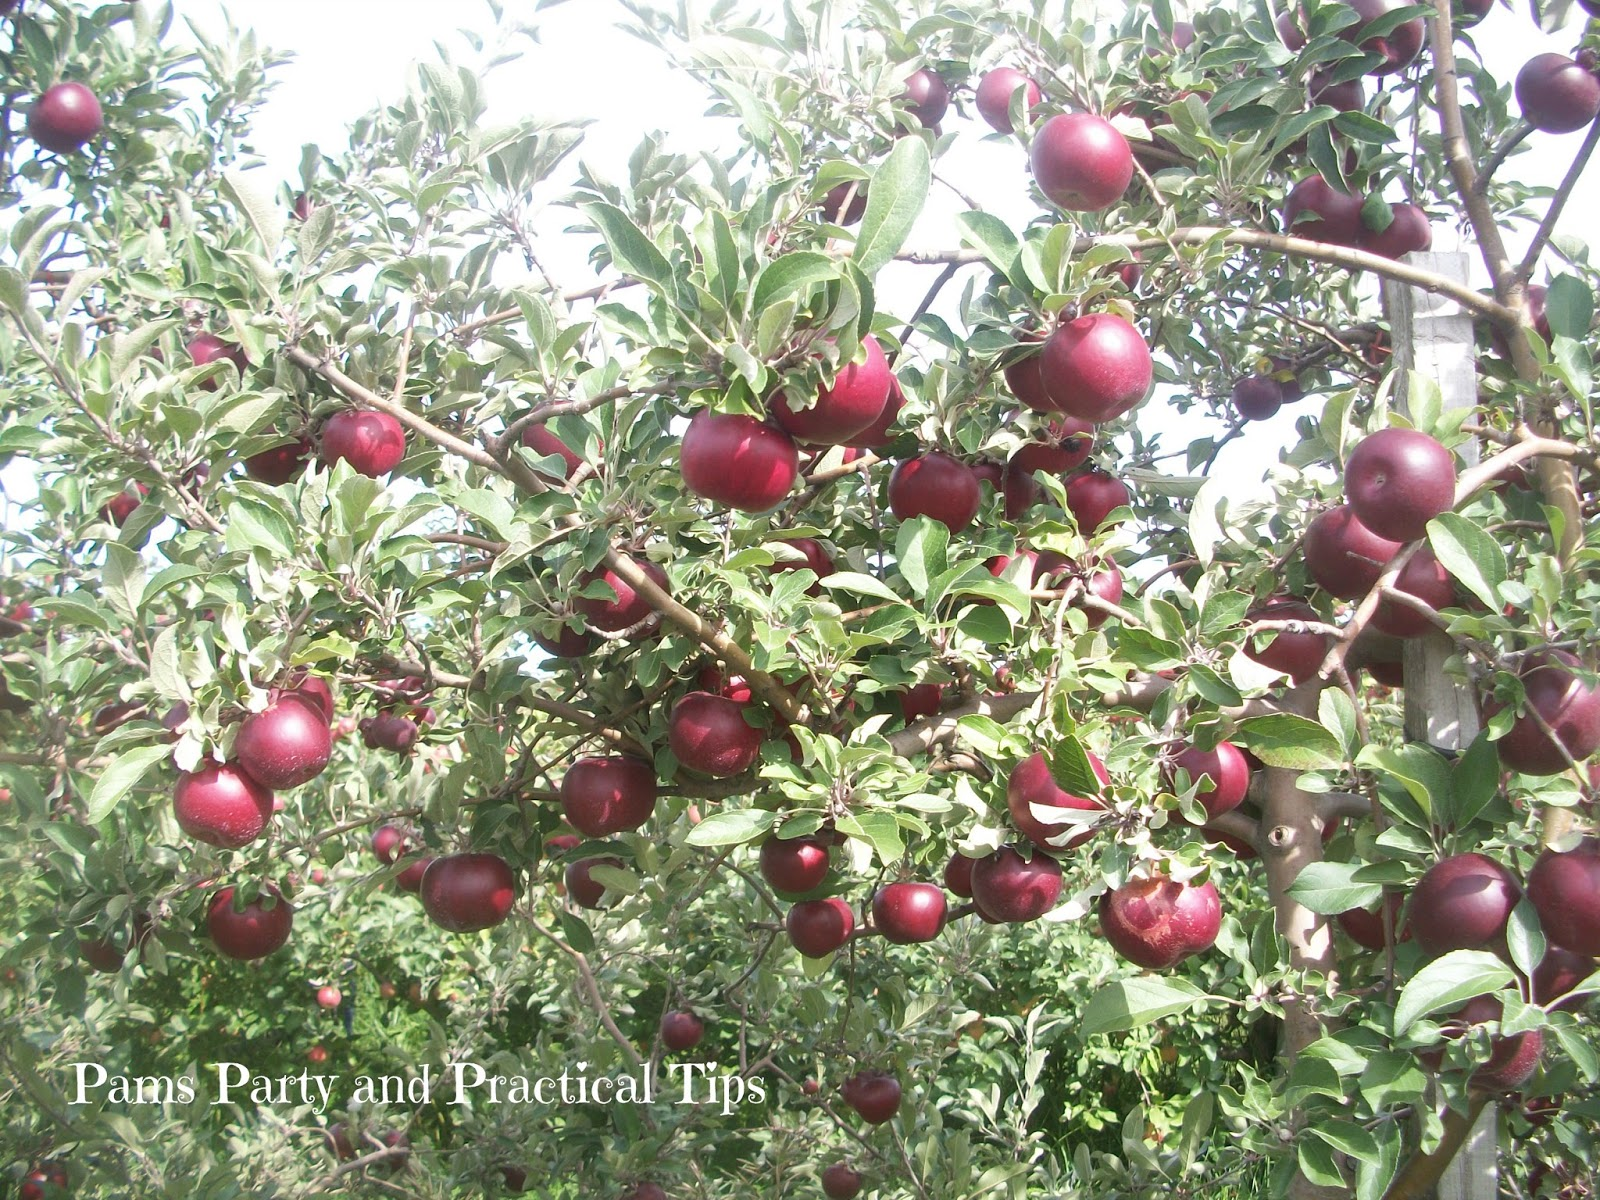 Pams party practical tips this week 39 s party theme is for Where can i go apple picking near me